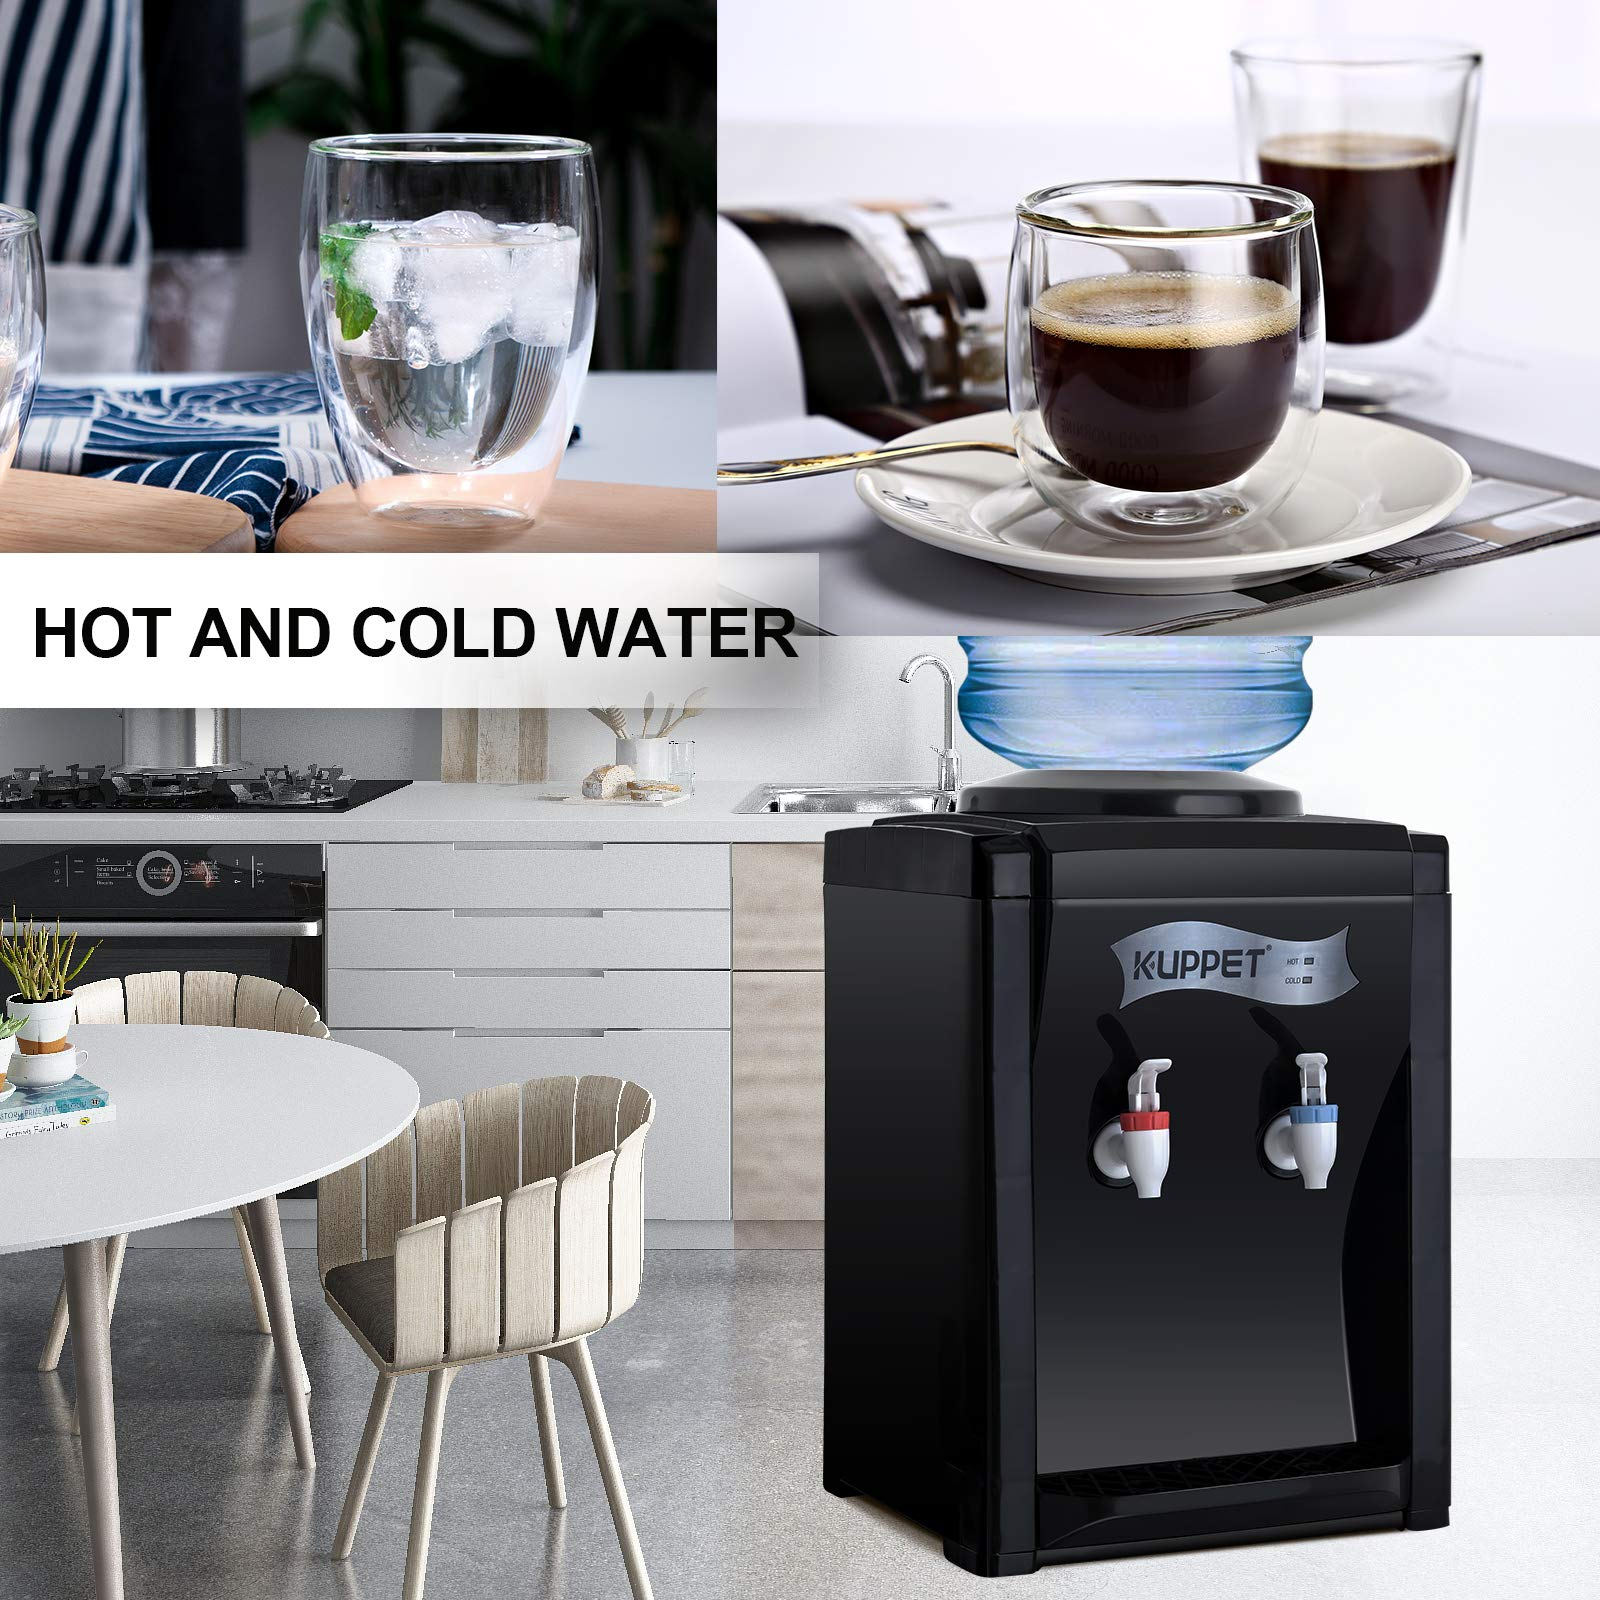 KUPPET 3-5 Gallon Countertop Water Cooler Dispenser-Hot & Cold Water, ideal For Home Office Use(17'', Black) by KUPPET (Image #8)